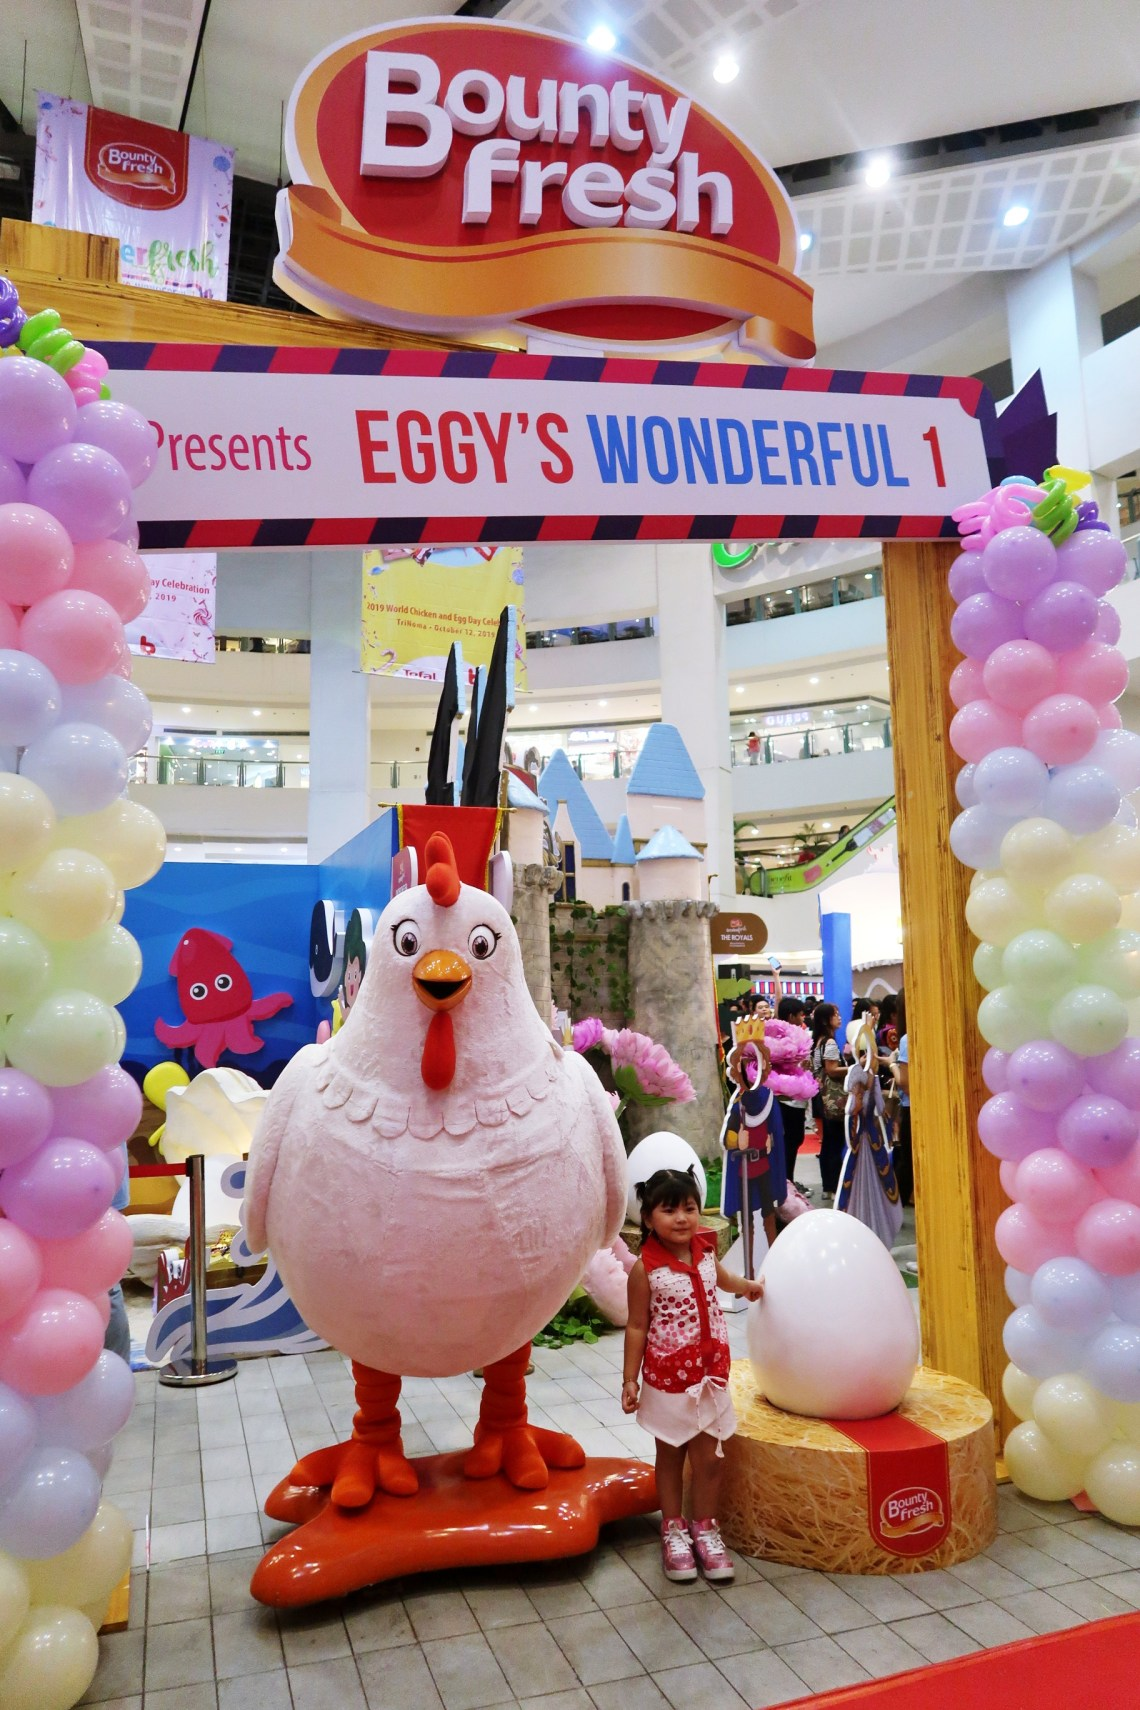 dyosathemomma: Bounty Fresh World Chicken and Egg Day 2019, #LakingFarmFresh #OctoberFresh Amaria Niszha